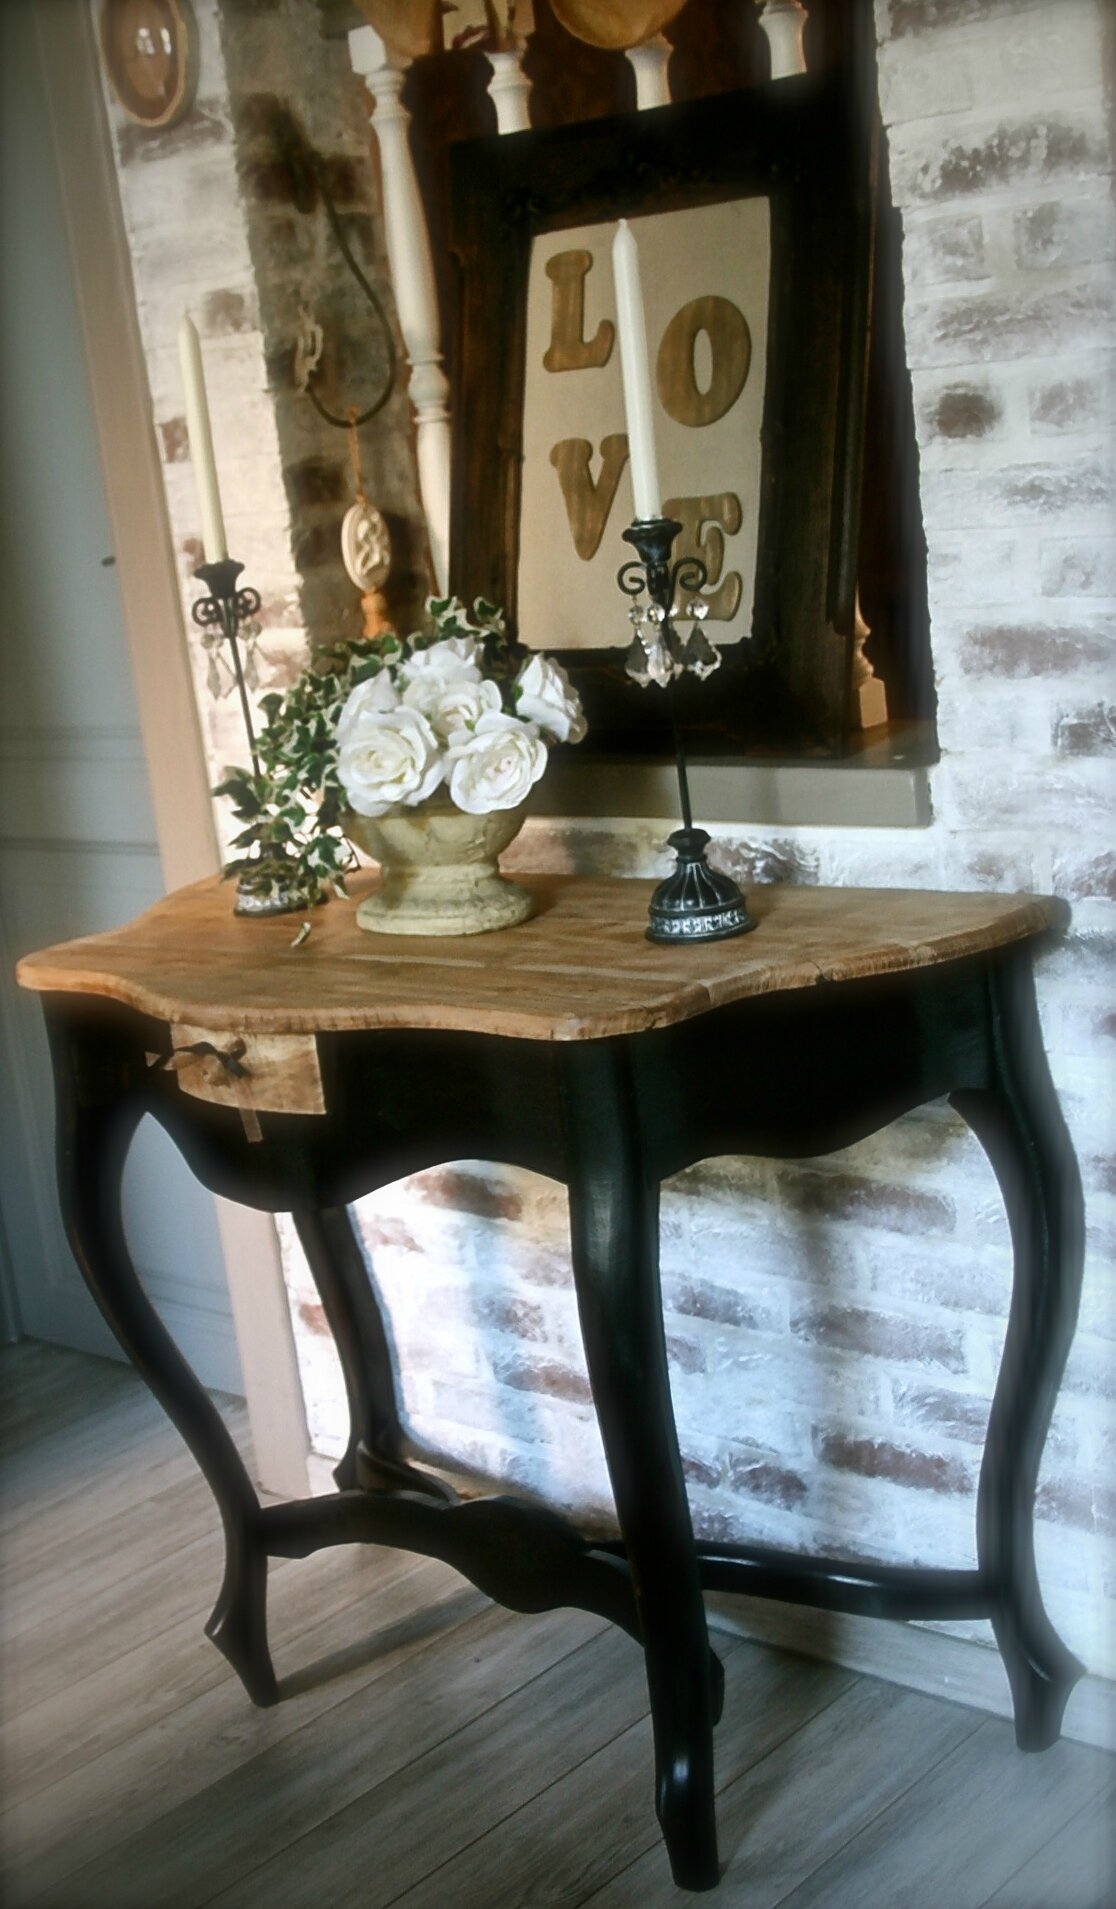 superbe ancienne table console stylis e en bois massif sur 4 pieds patine blog de missantic. Black Bedroom Furniture Sets. Home Design Ideas